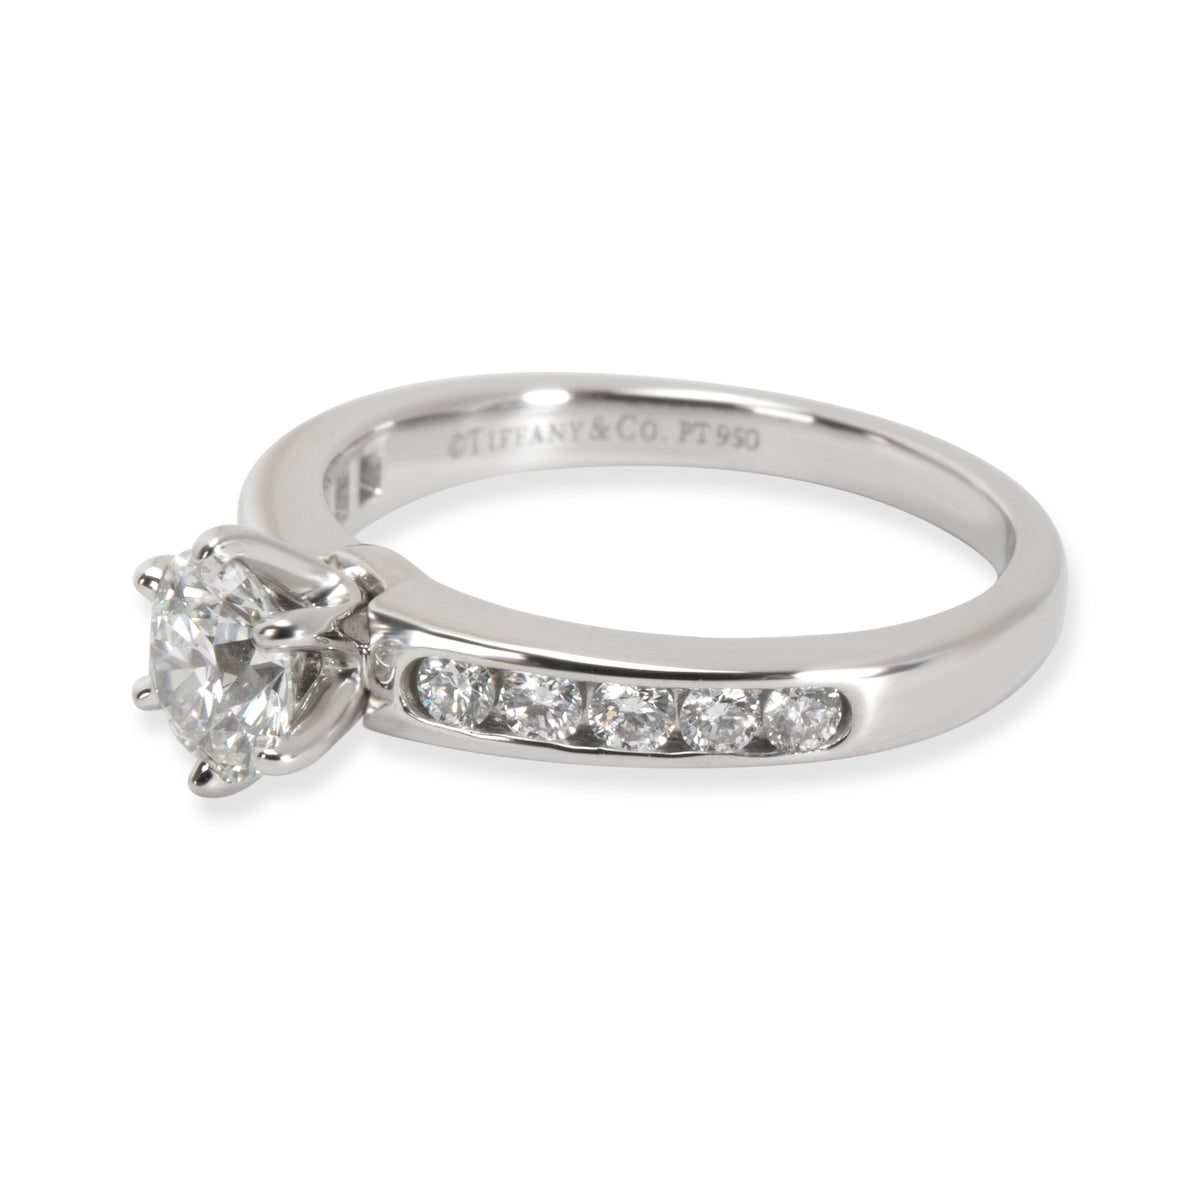 Tiffany & Co. Diamond Engagement Ring in Platinum I/VS1 1.14 CTW